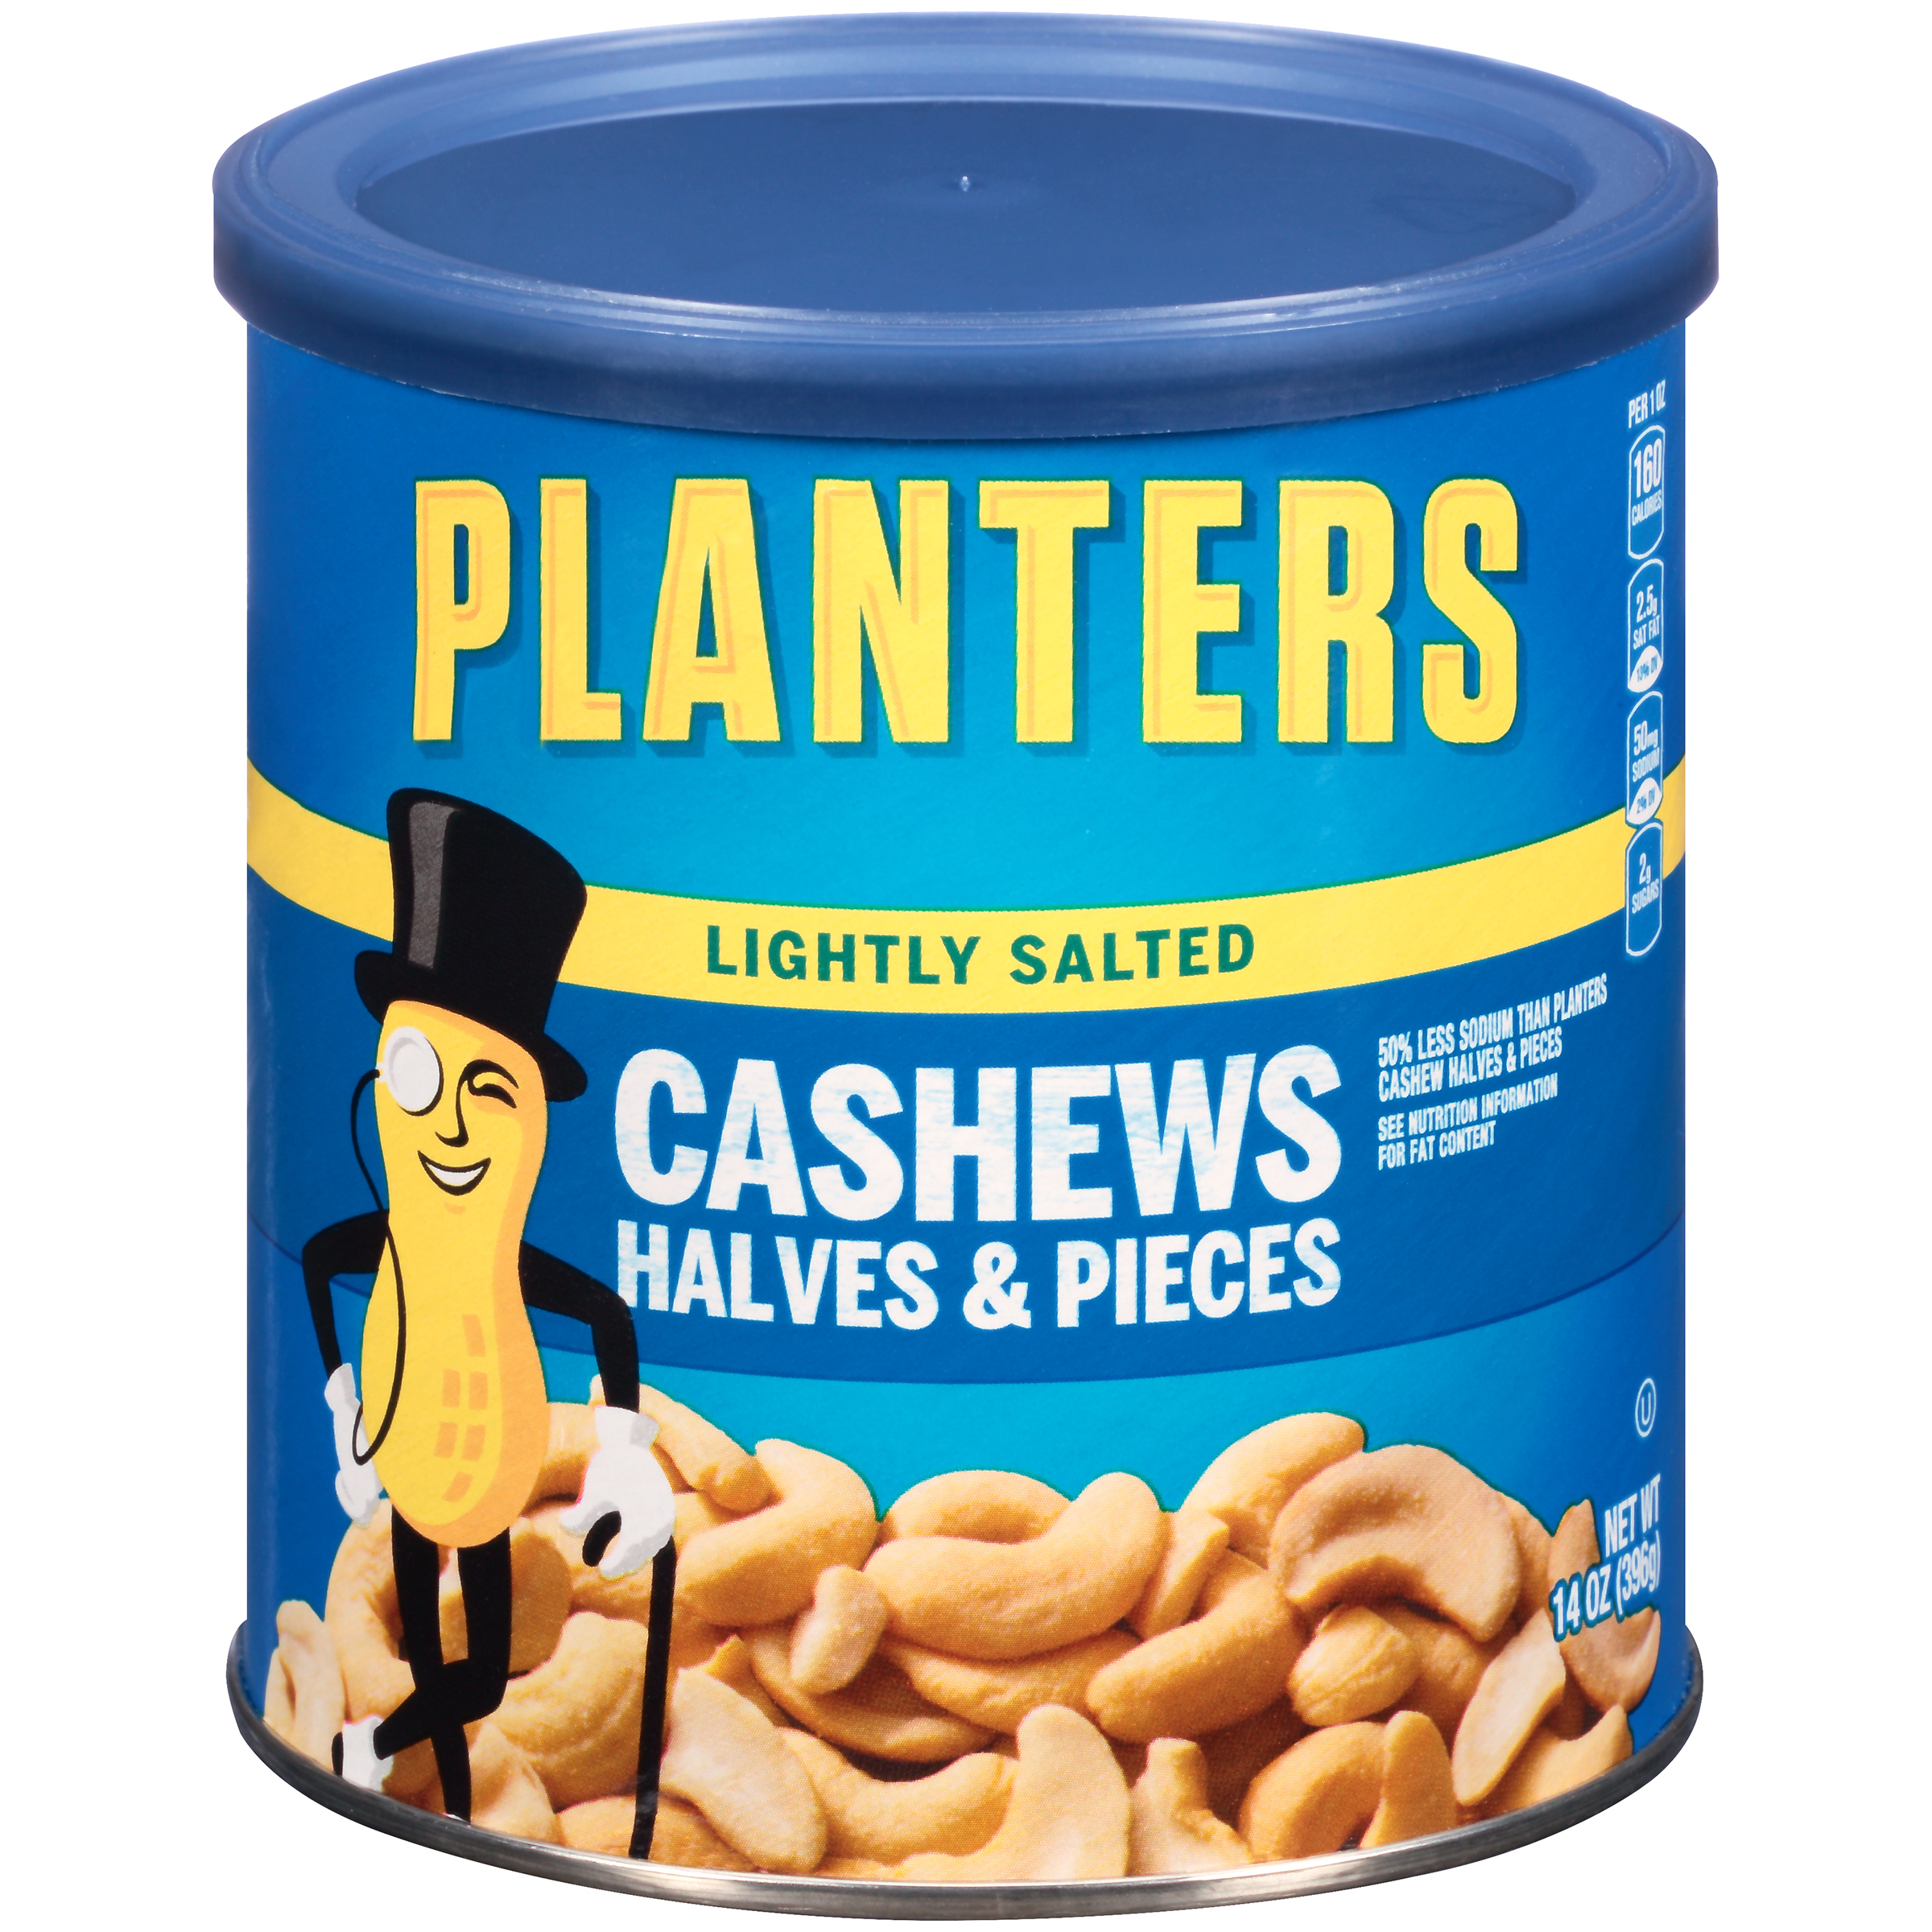 Planters Lightly Salted Cashew Halves & Pieces